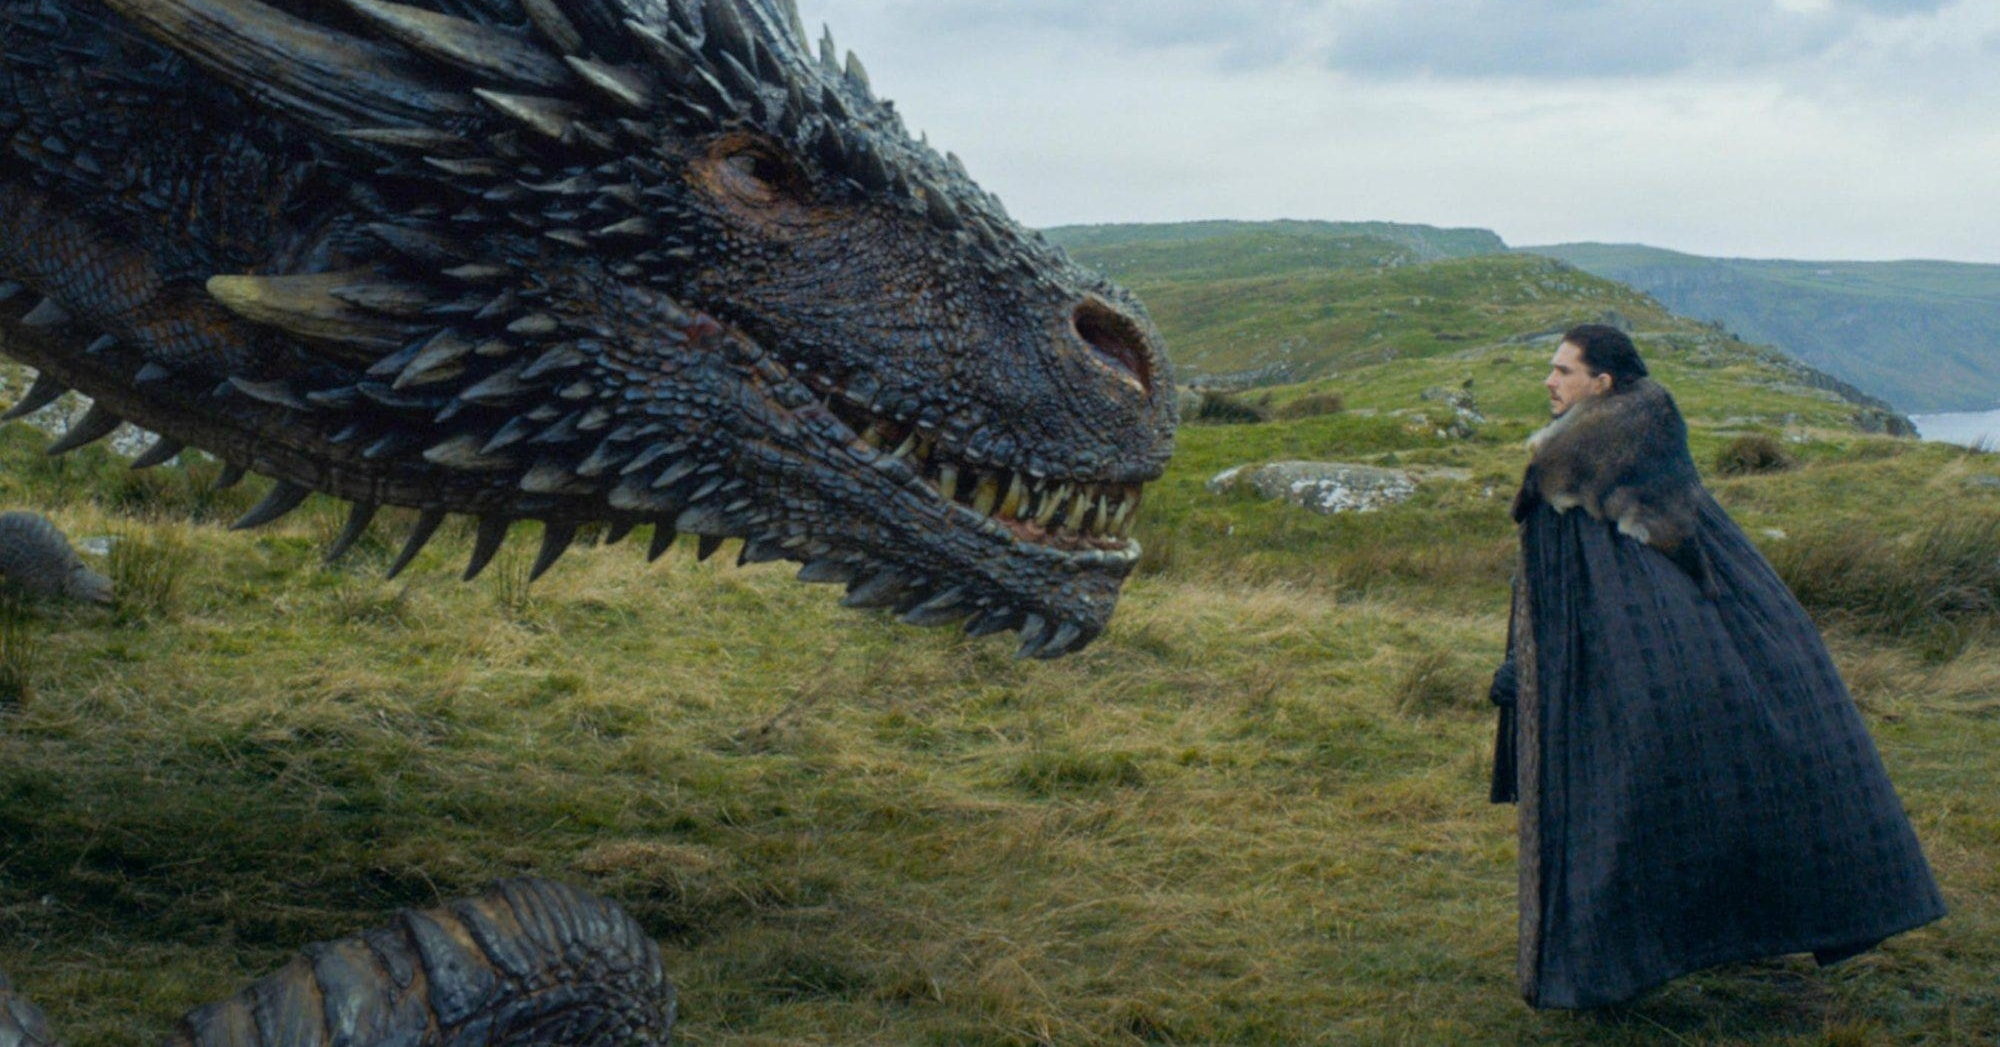 watch-game-of-thrones-season-8-watch-game-of-thrones-online-Cropped-min